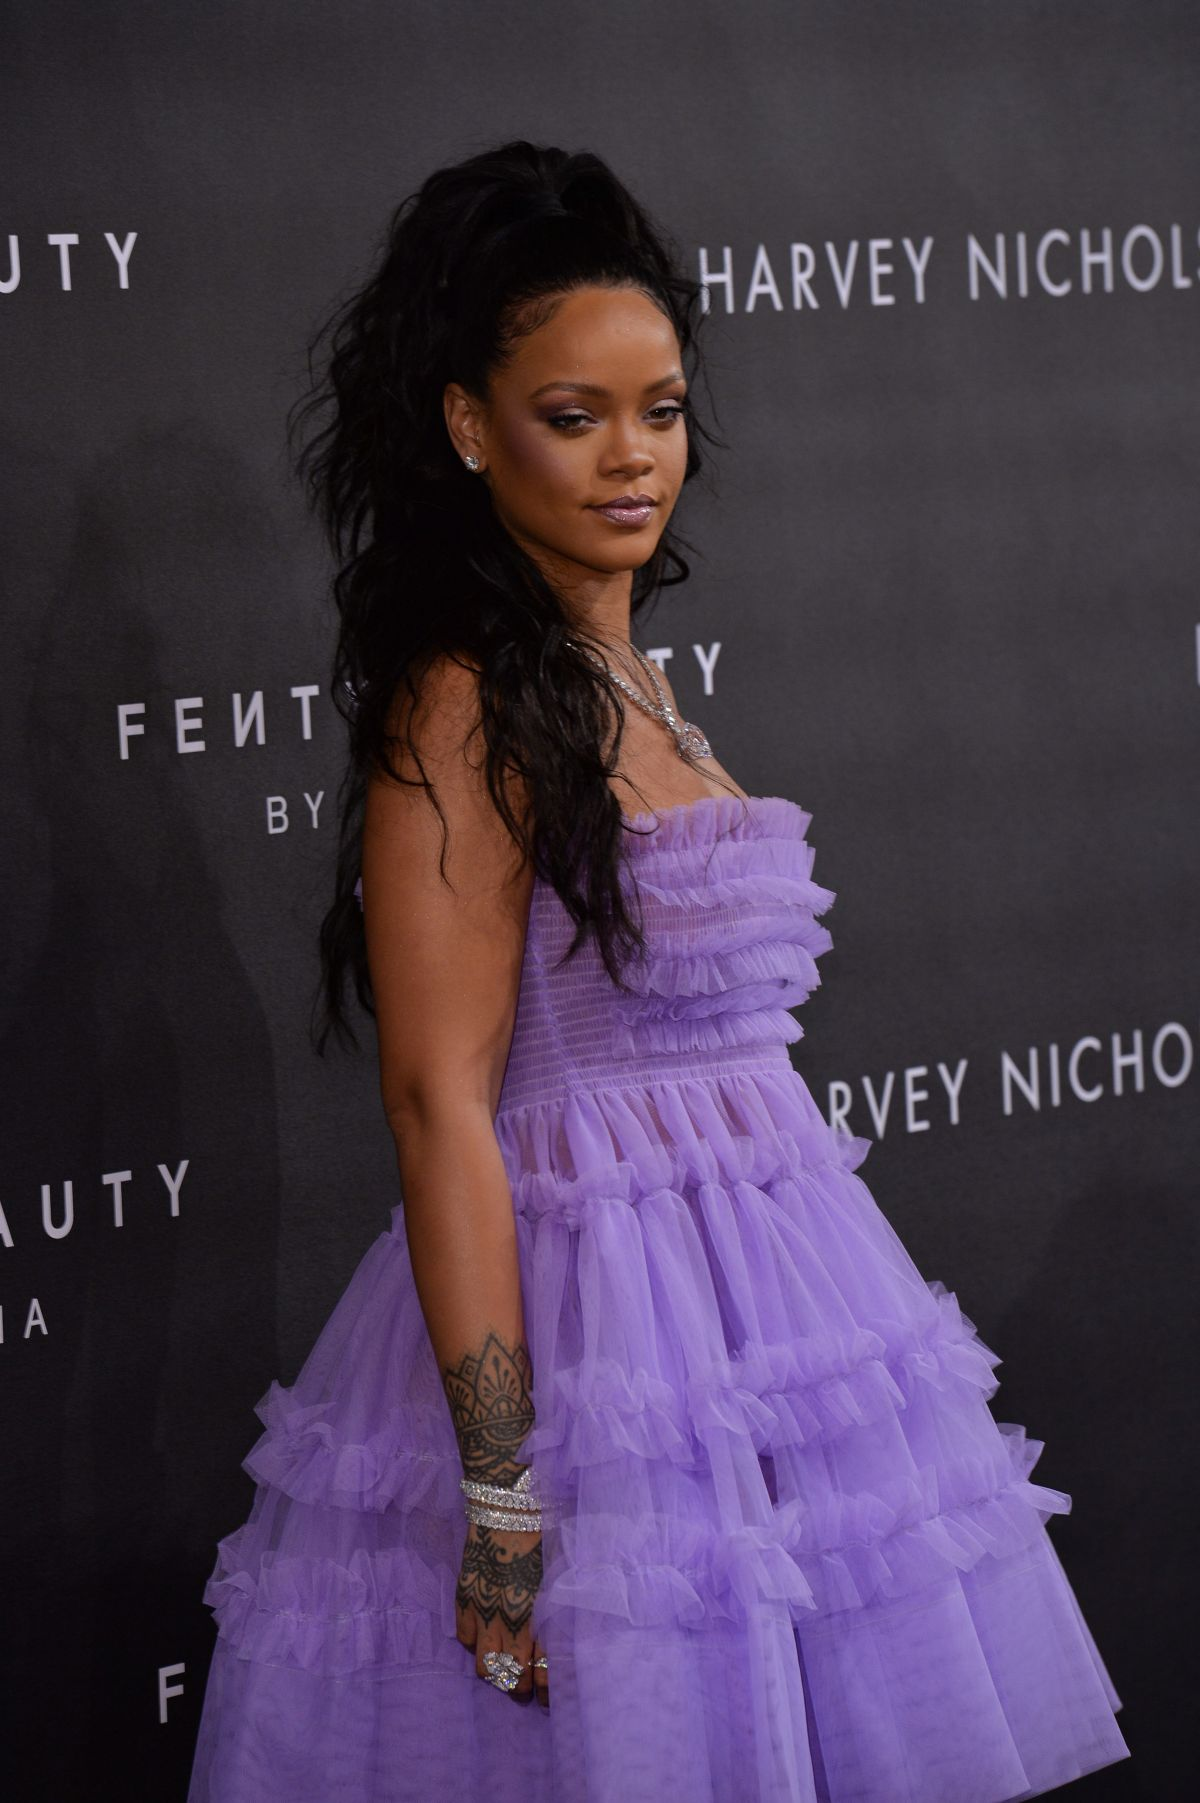 Beauty Launch The Mac Punk Couture Collection: Rihanna At Fenty Beauty Launch Party In London, UK